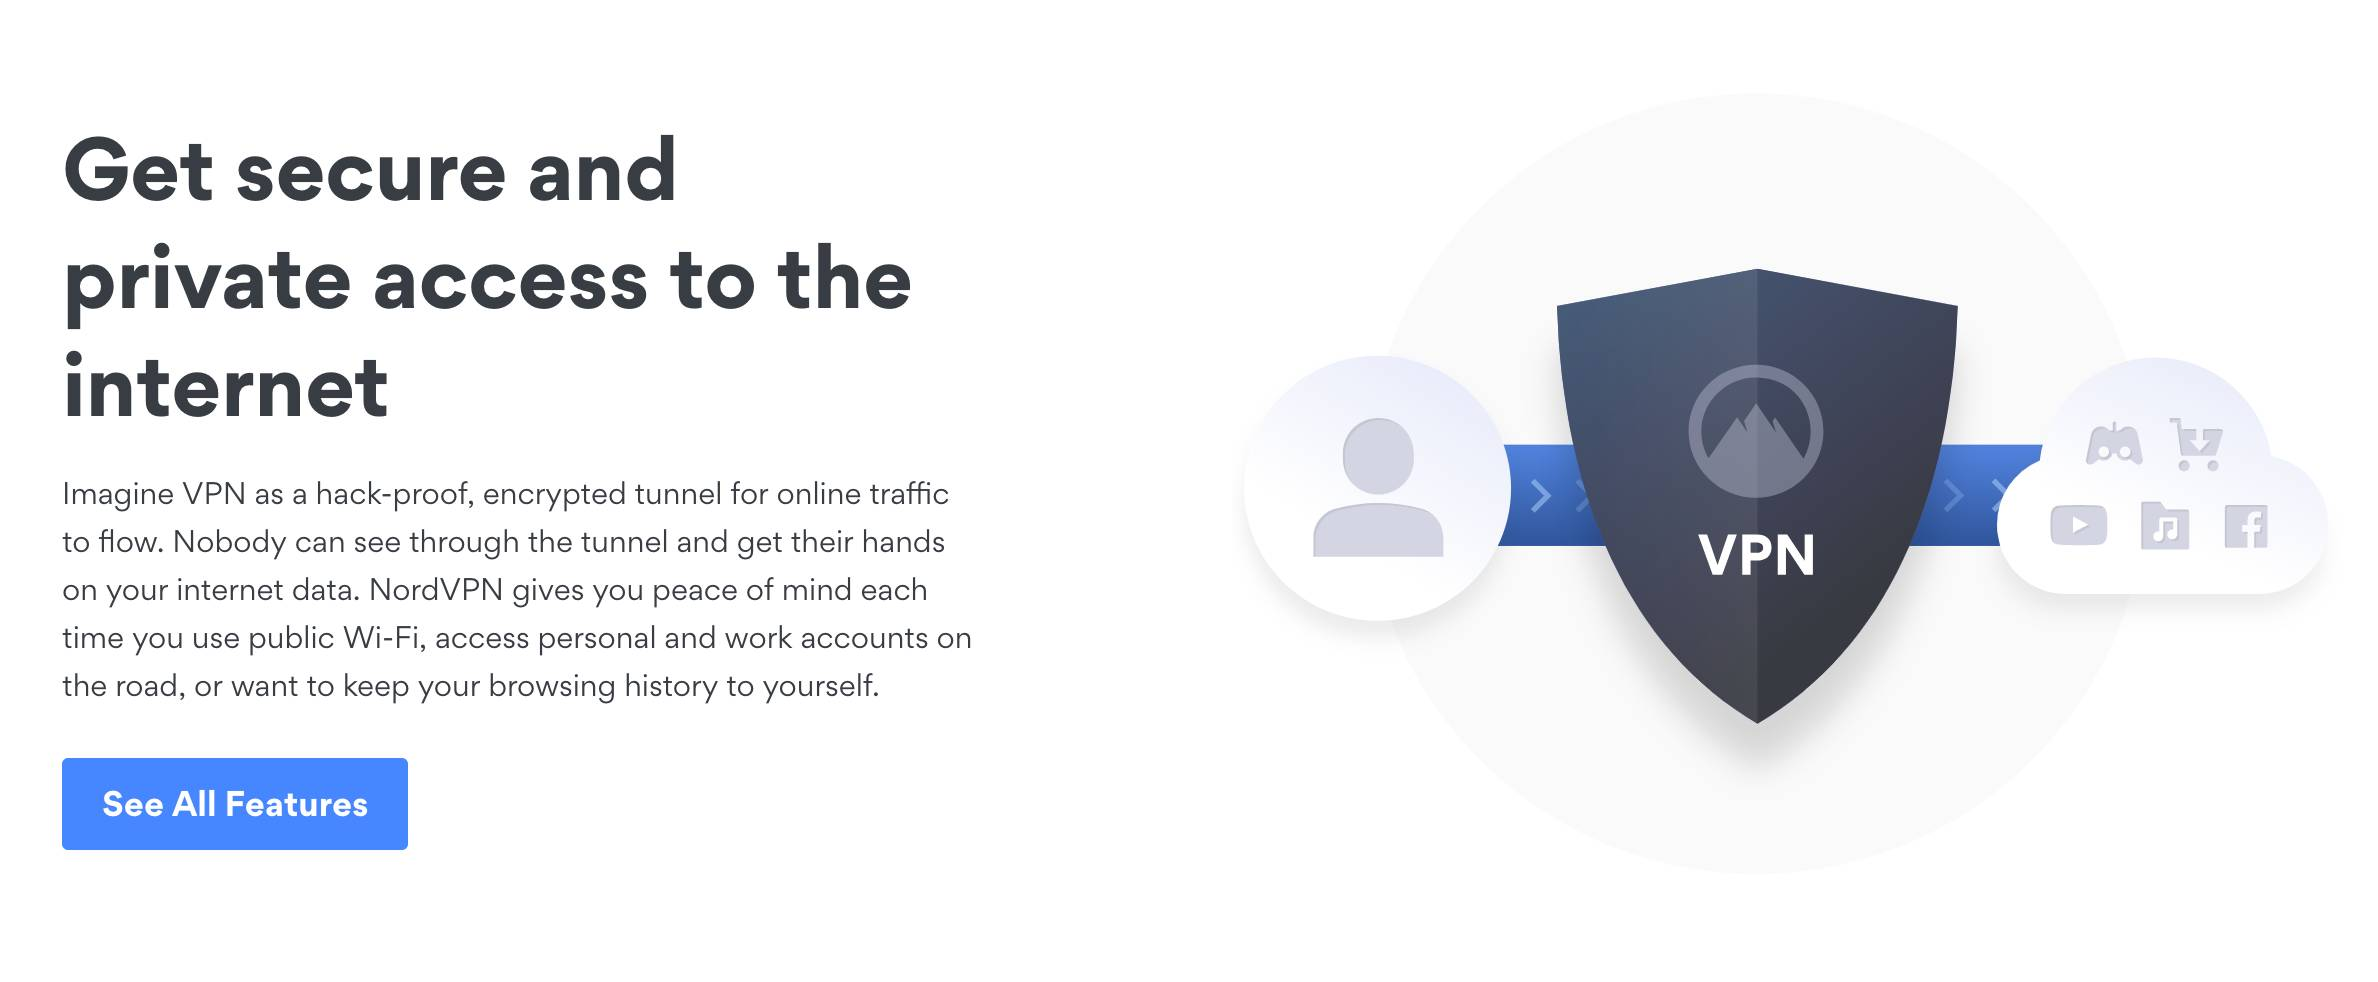 Choose NordVPN for its security